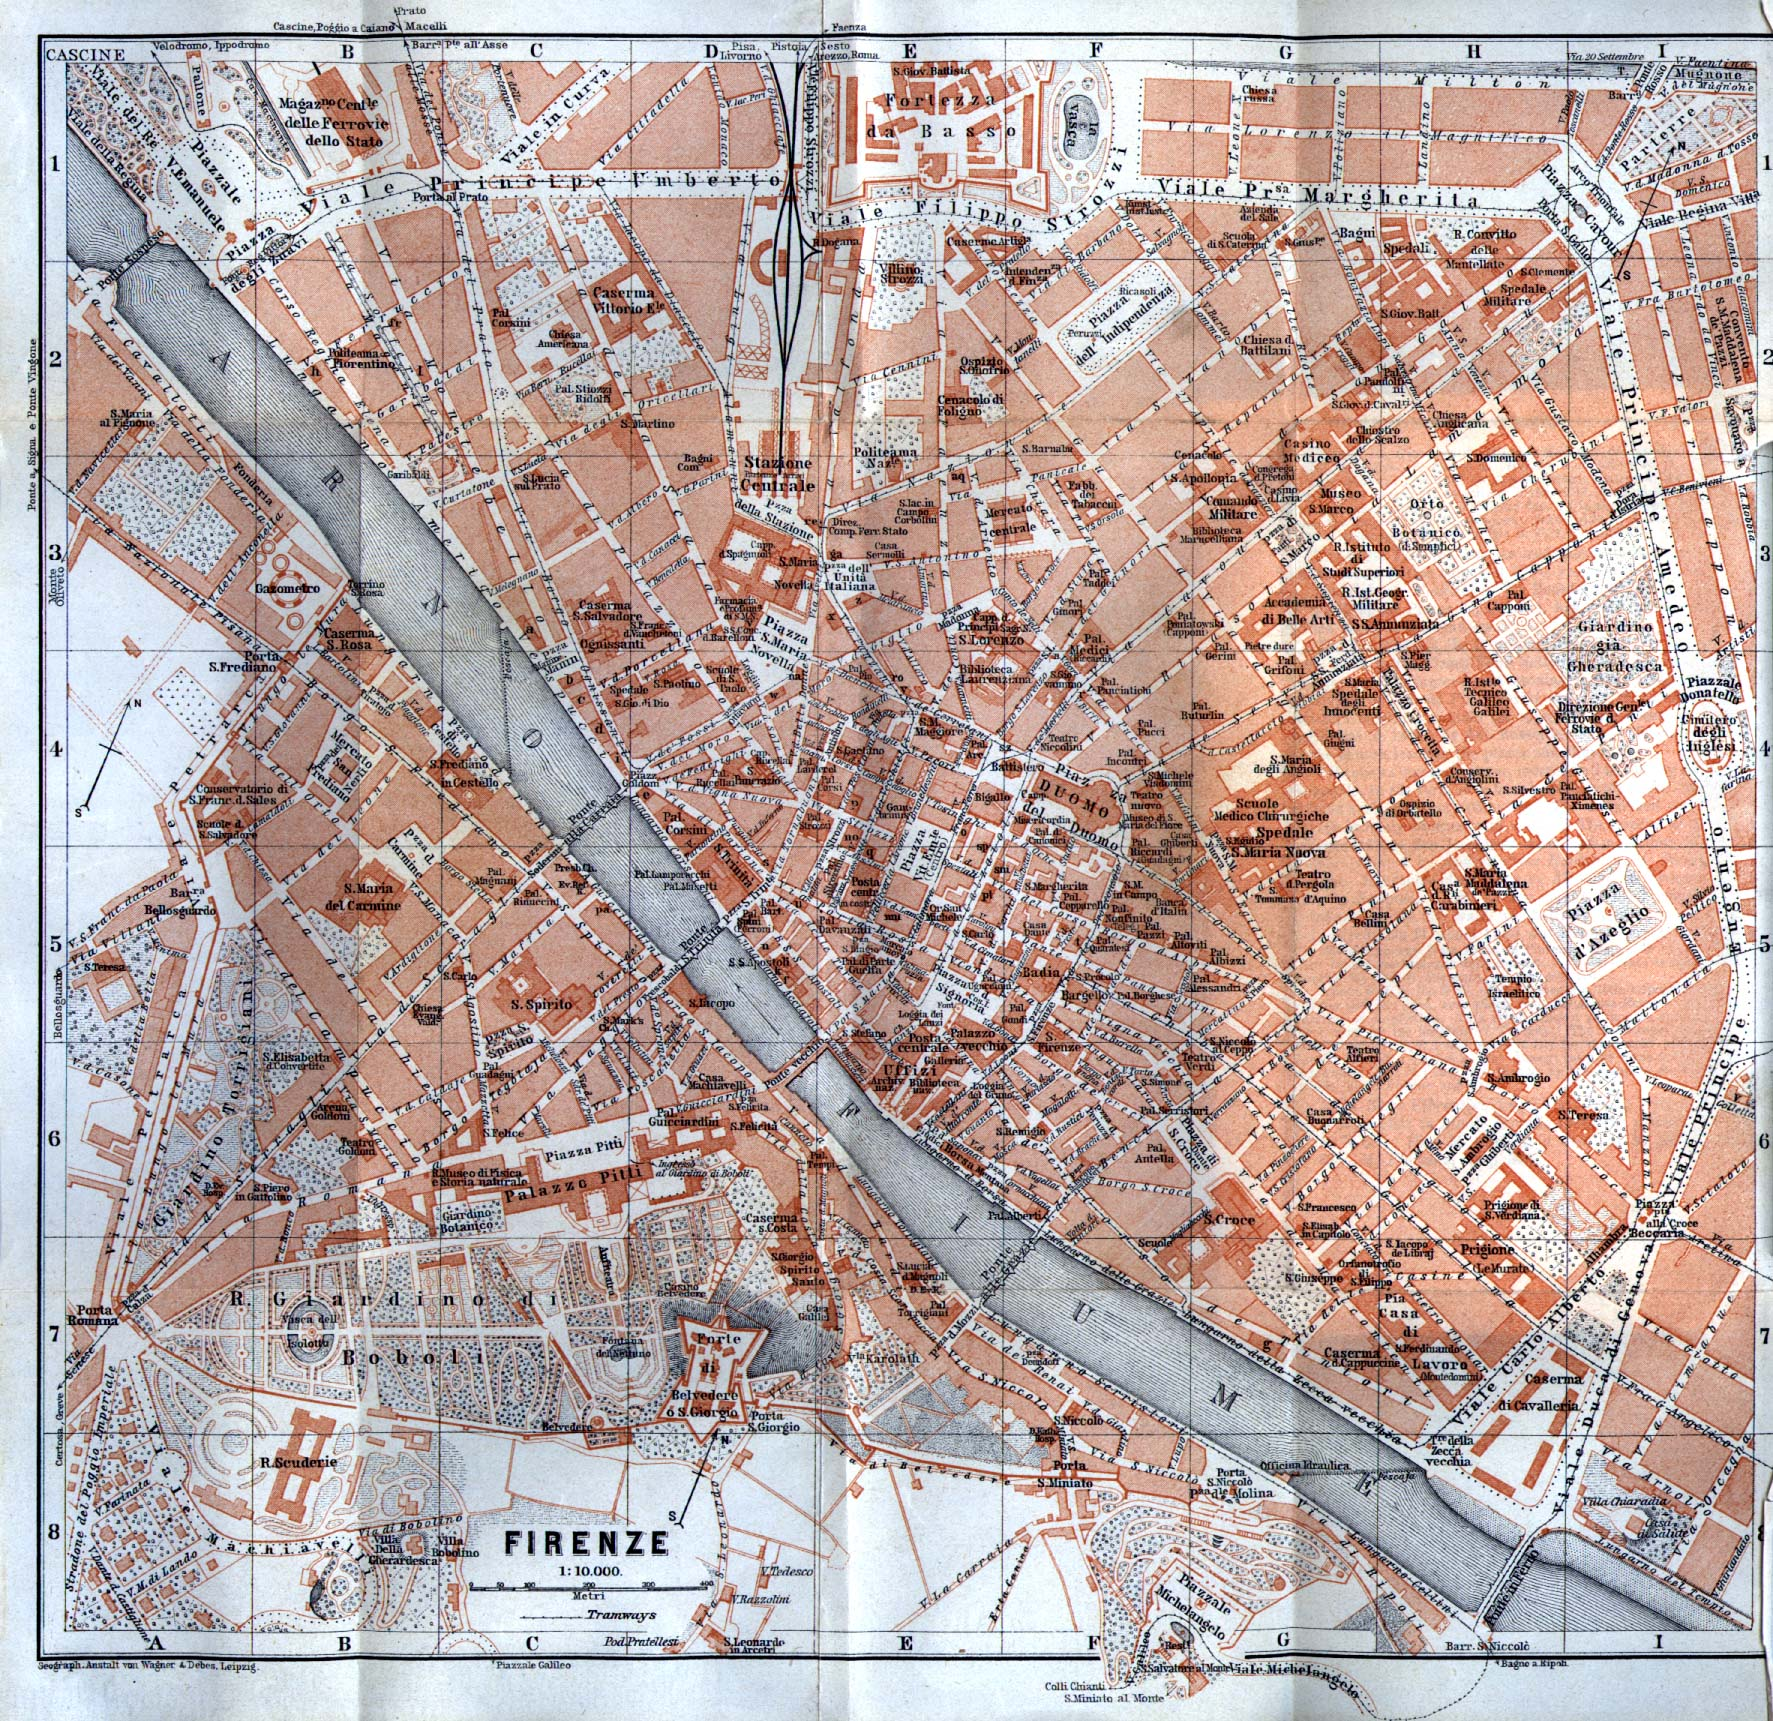 Firenze (Florence) City Map, Italy 1913